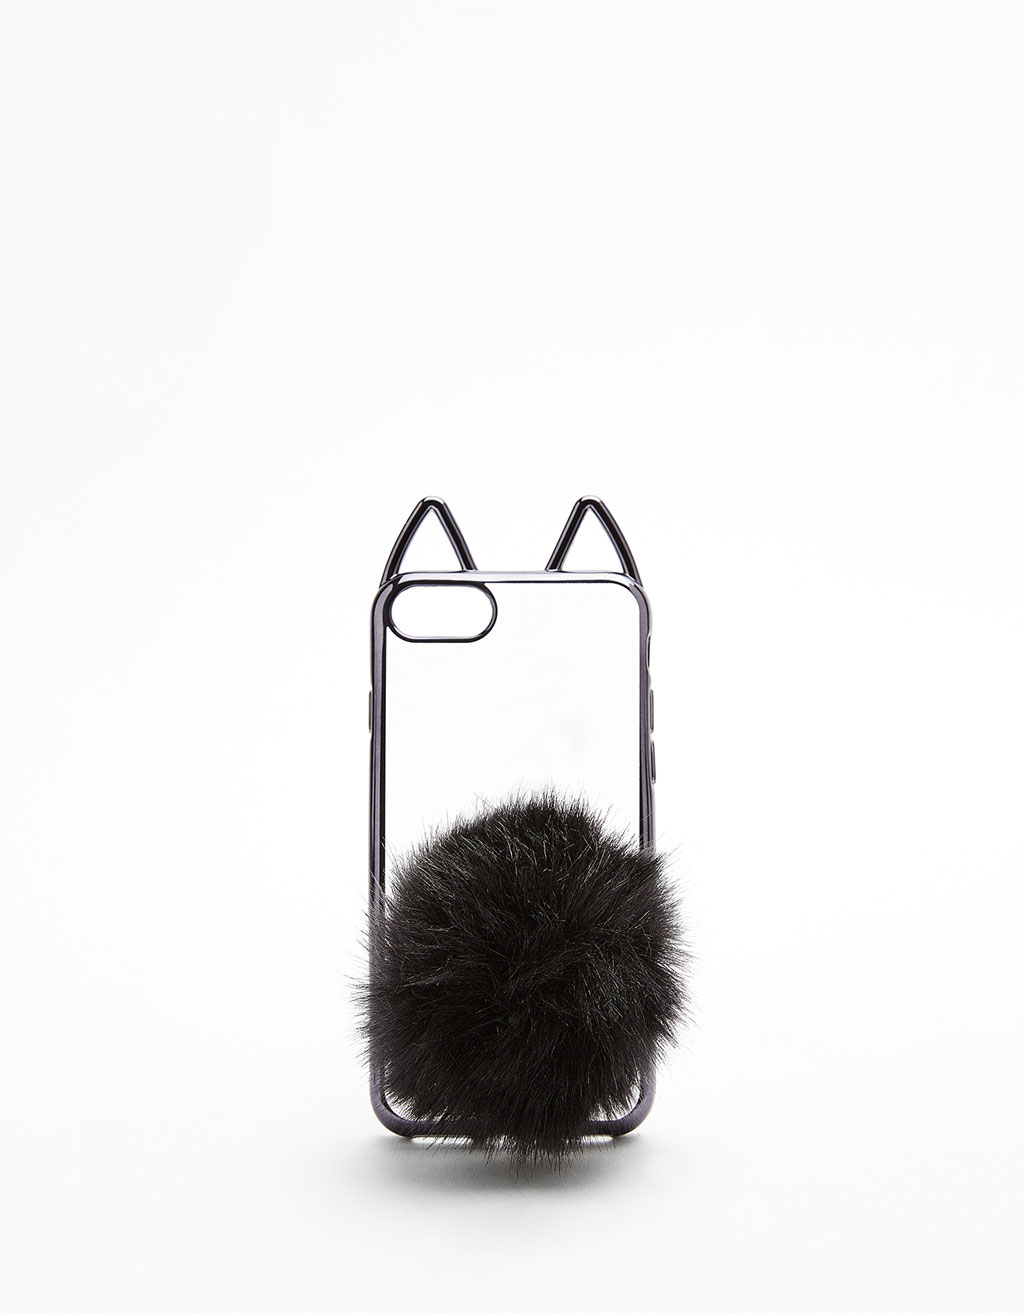 Transparent cat-shaped iPhone 7 case with pompom